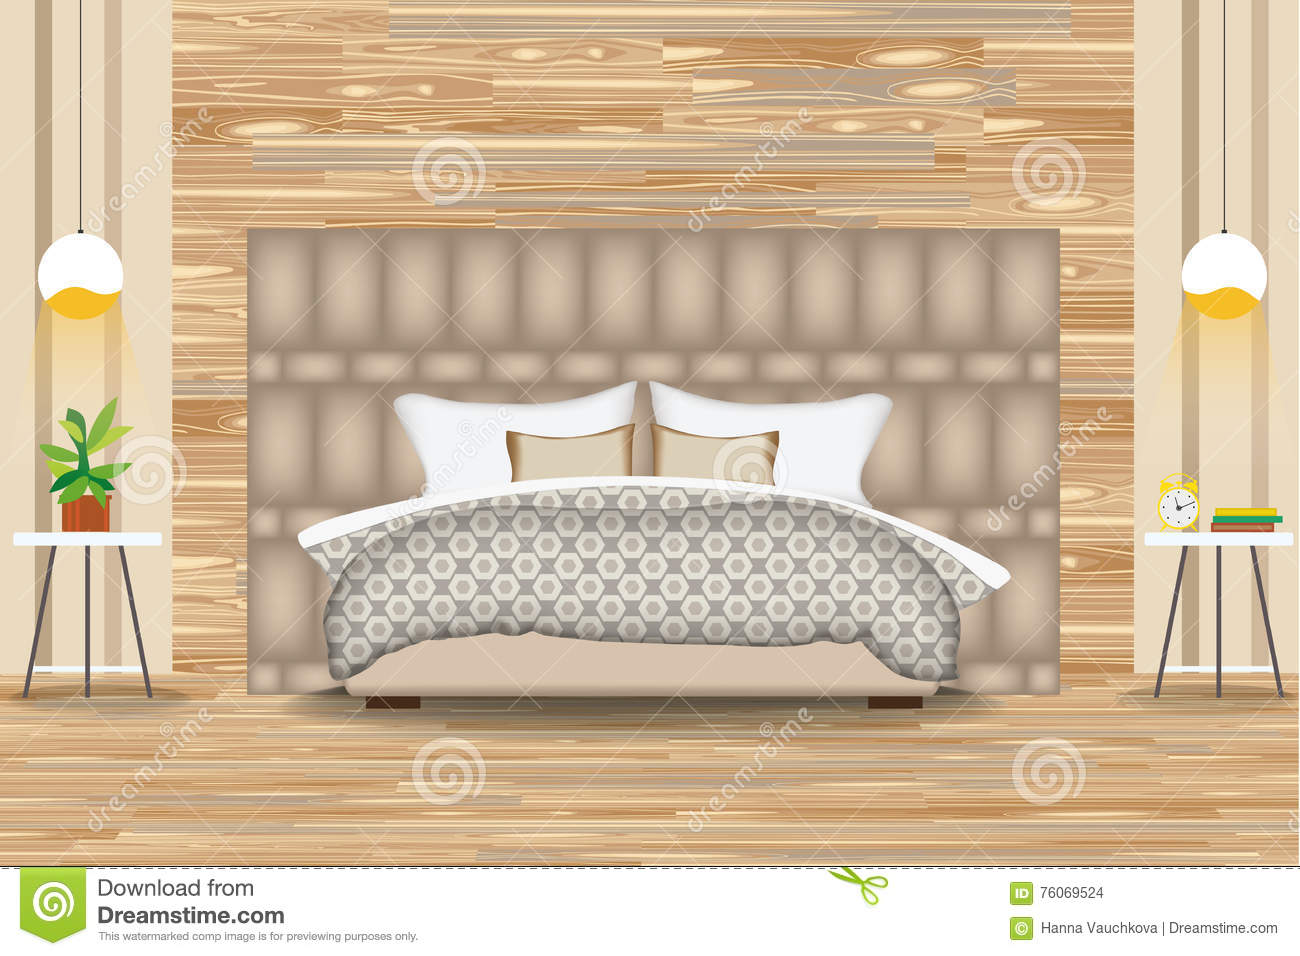 Side Design El | Modern Style Interior Design Vector Illustration Bed In Front Of